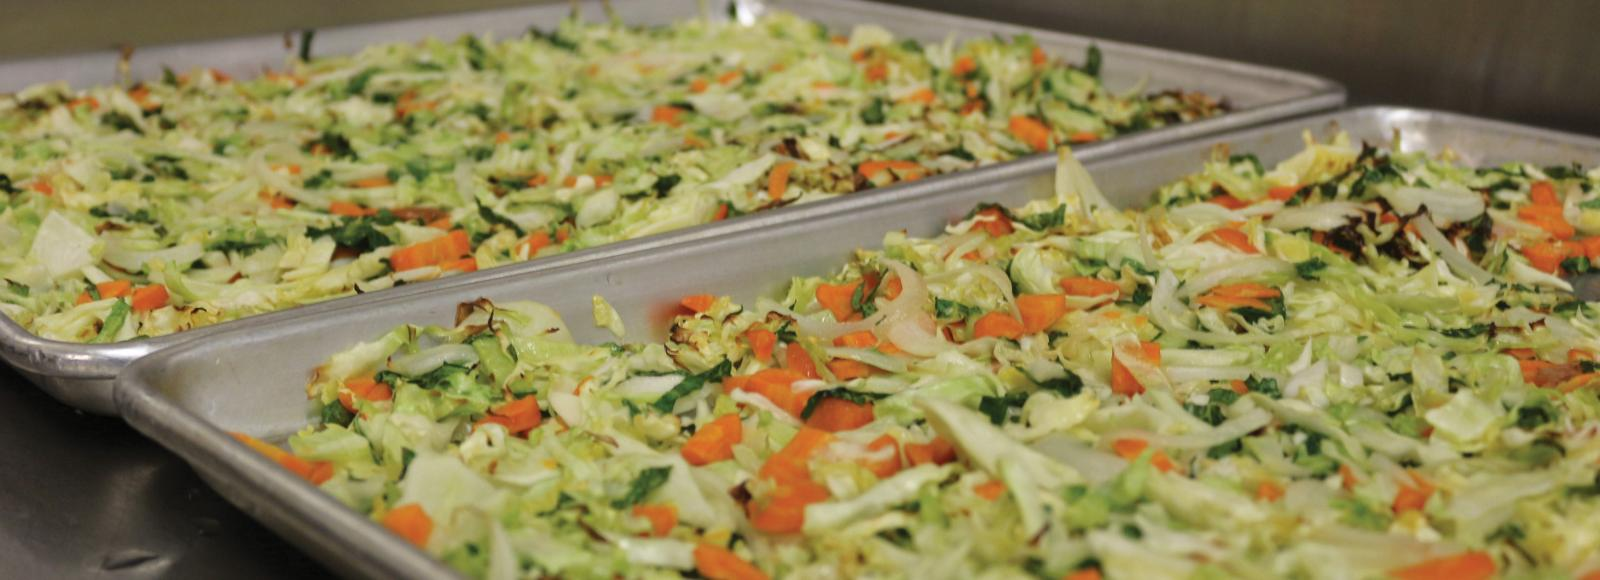 trays of roasted vegetables including cabbage and carrot